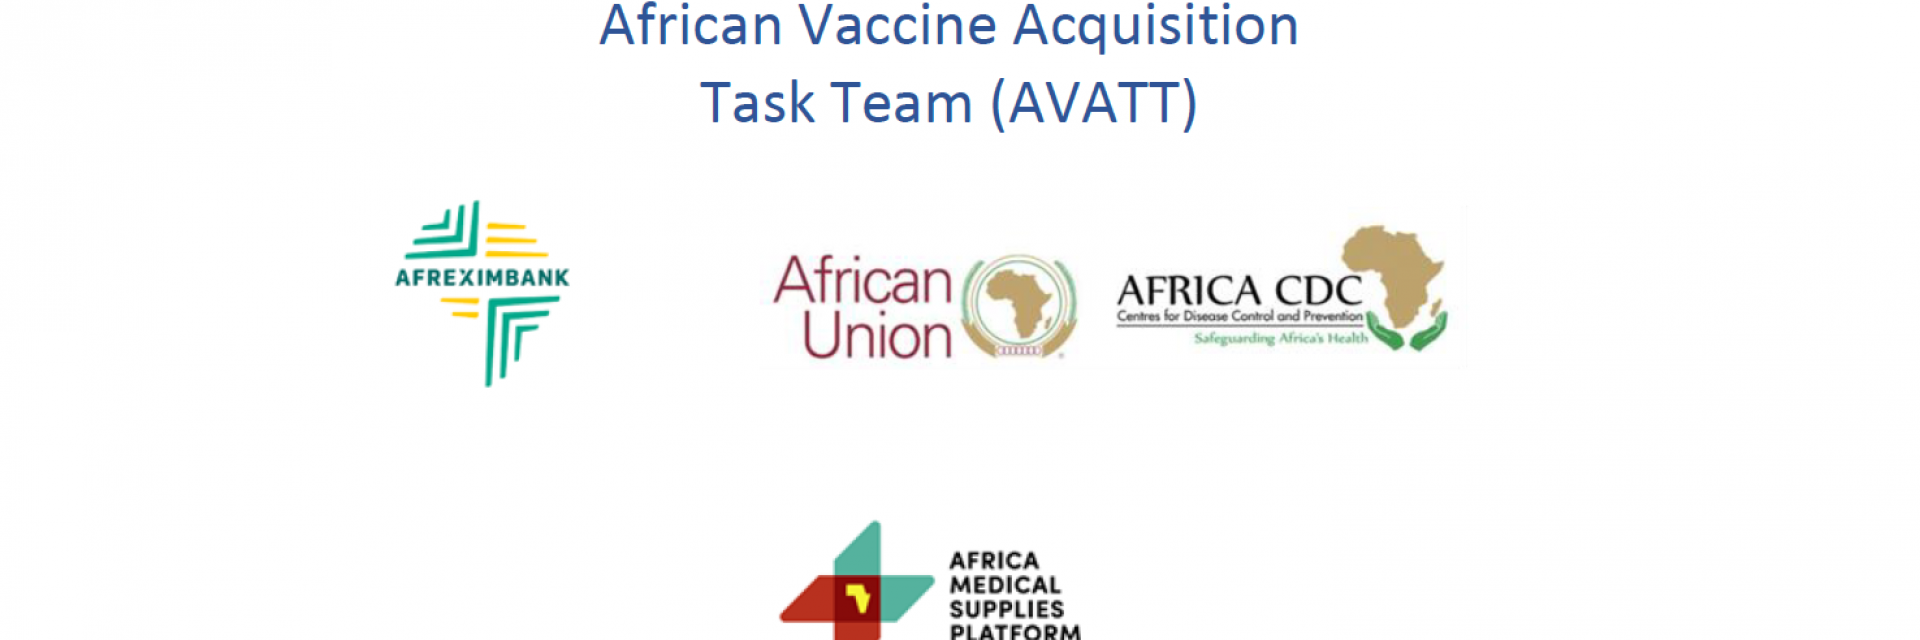 Africa Signs Historic Agreement with Johnson & Johnson for 400 Million Doses of COVID-19 Vaccines